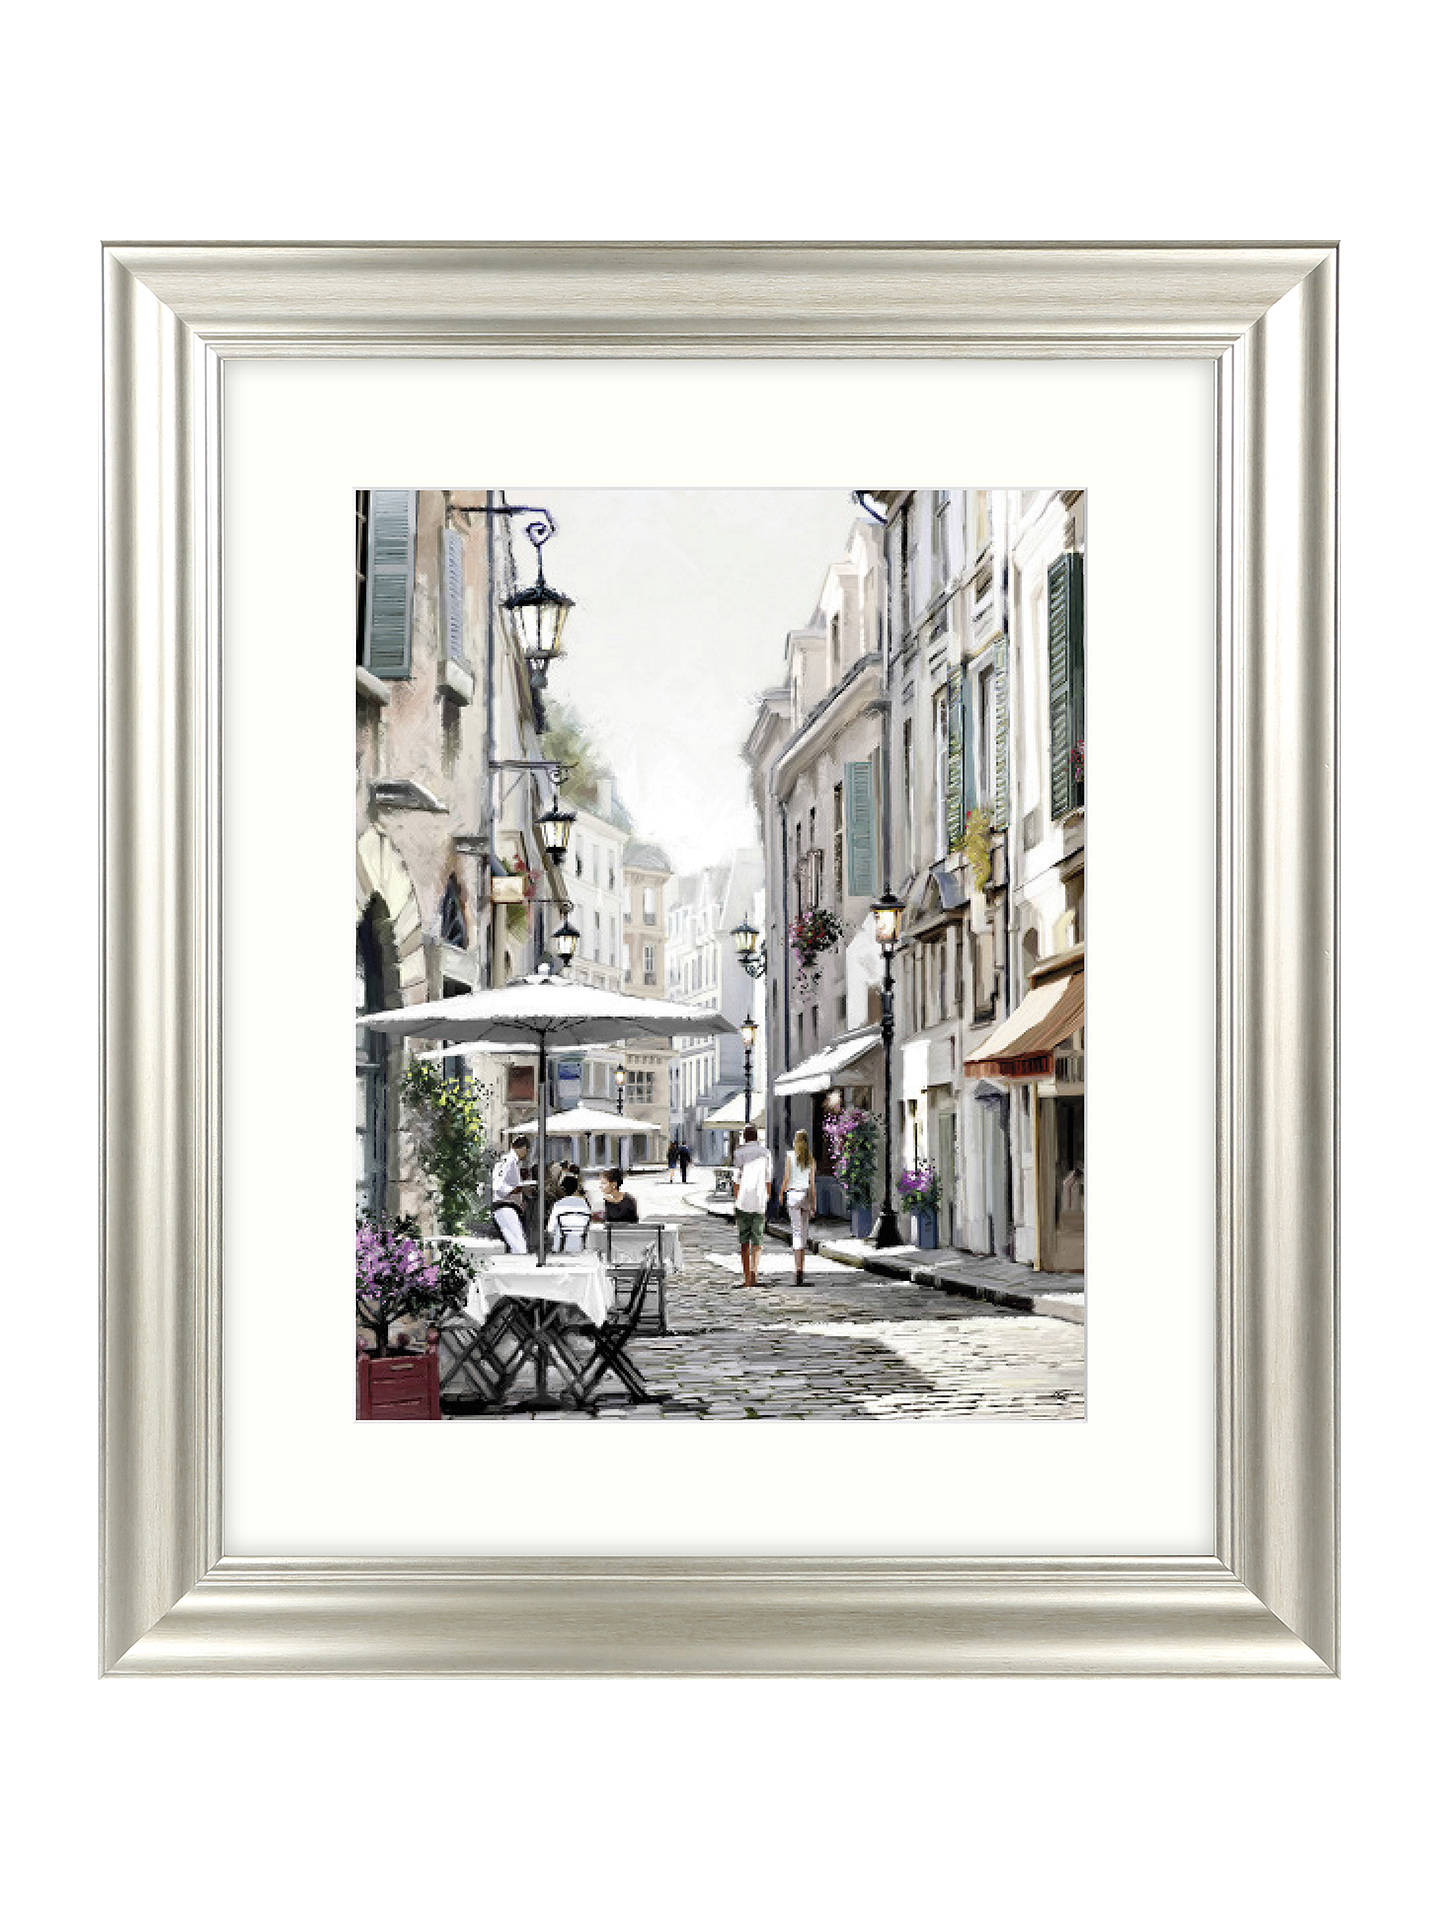 Buy Richard Macneil - City Street I Framed Print & Mount, 71 x 61cm Online at johnlewis.com